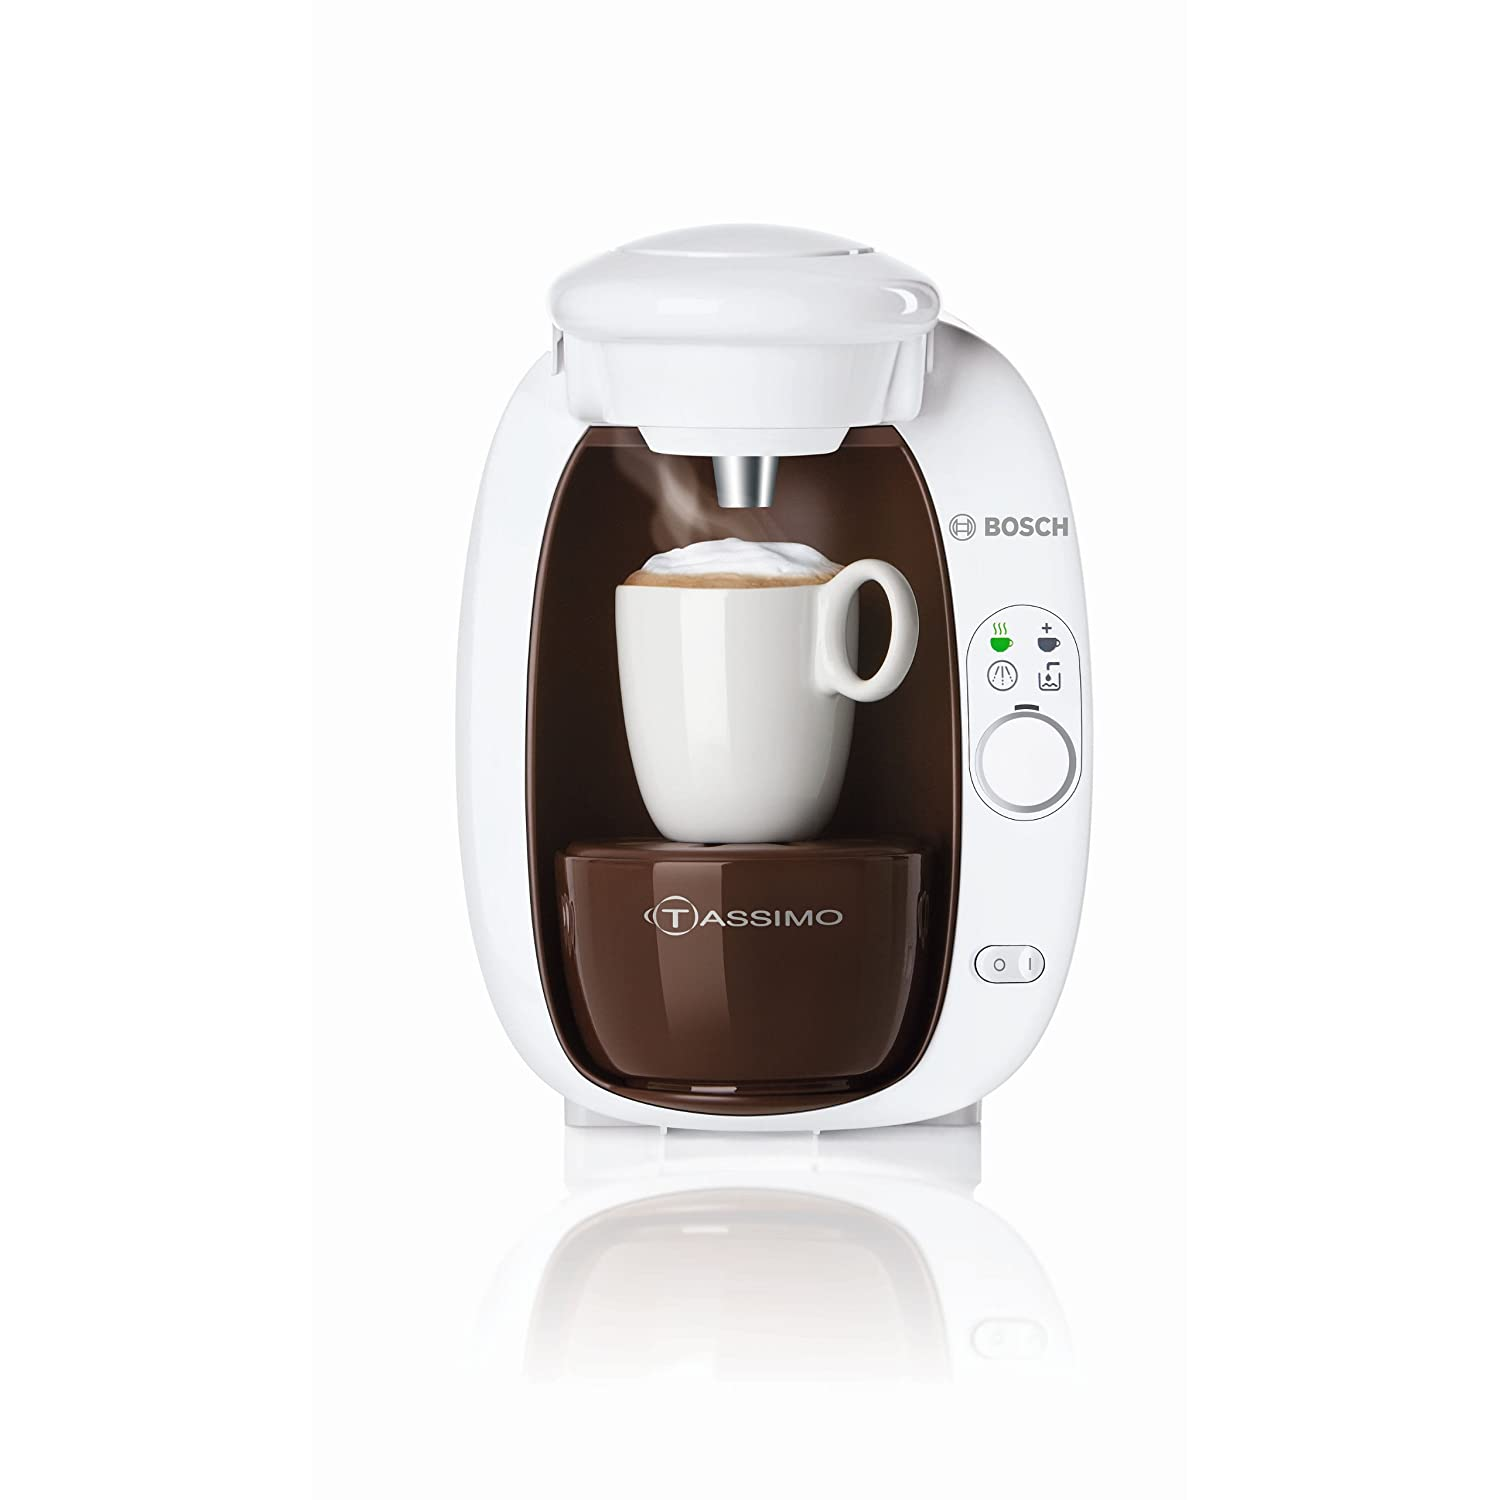 Portable Tassimo Coffee Maker : Tassimo by Bosch TAS2001UC Single Serve Coffee Brewer ~ coffee maker machine